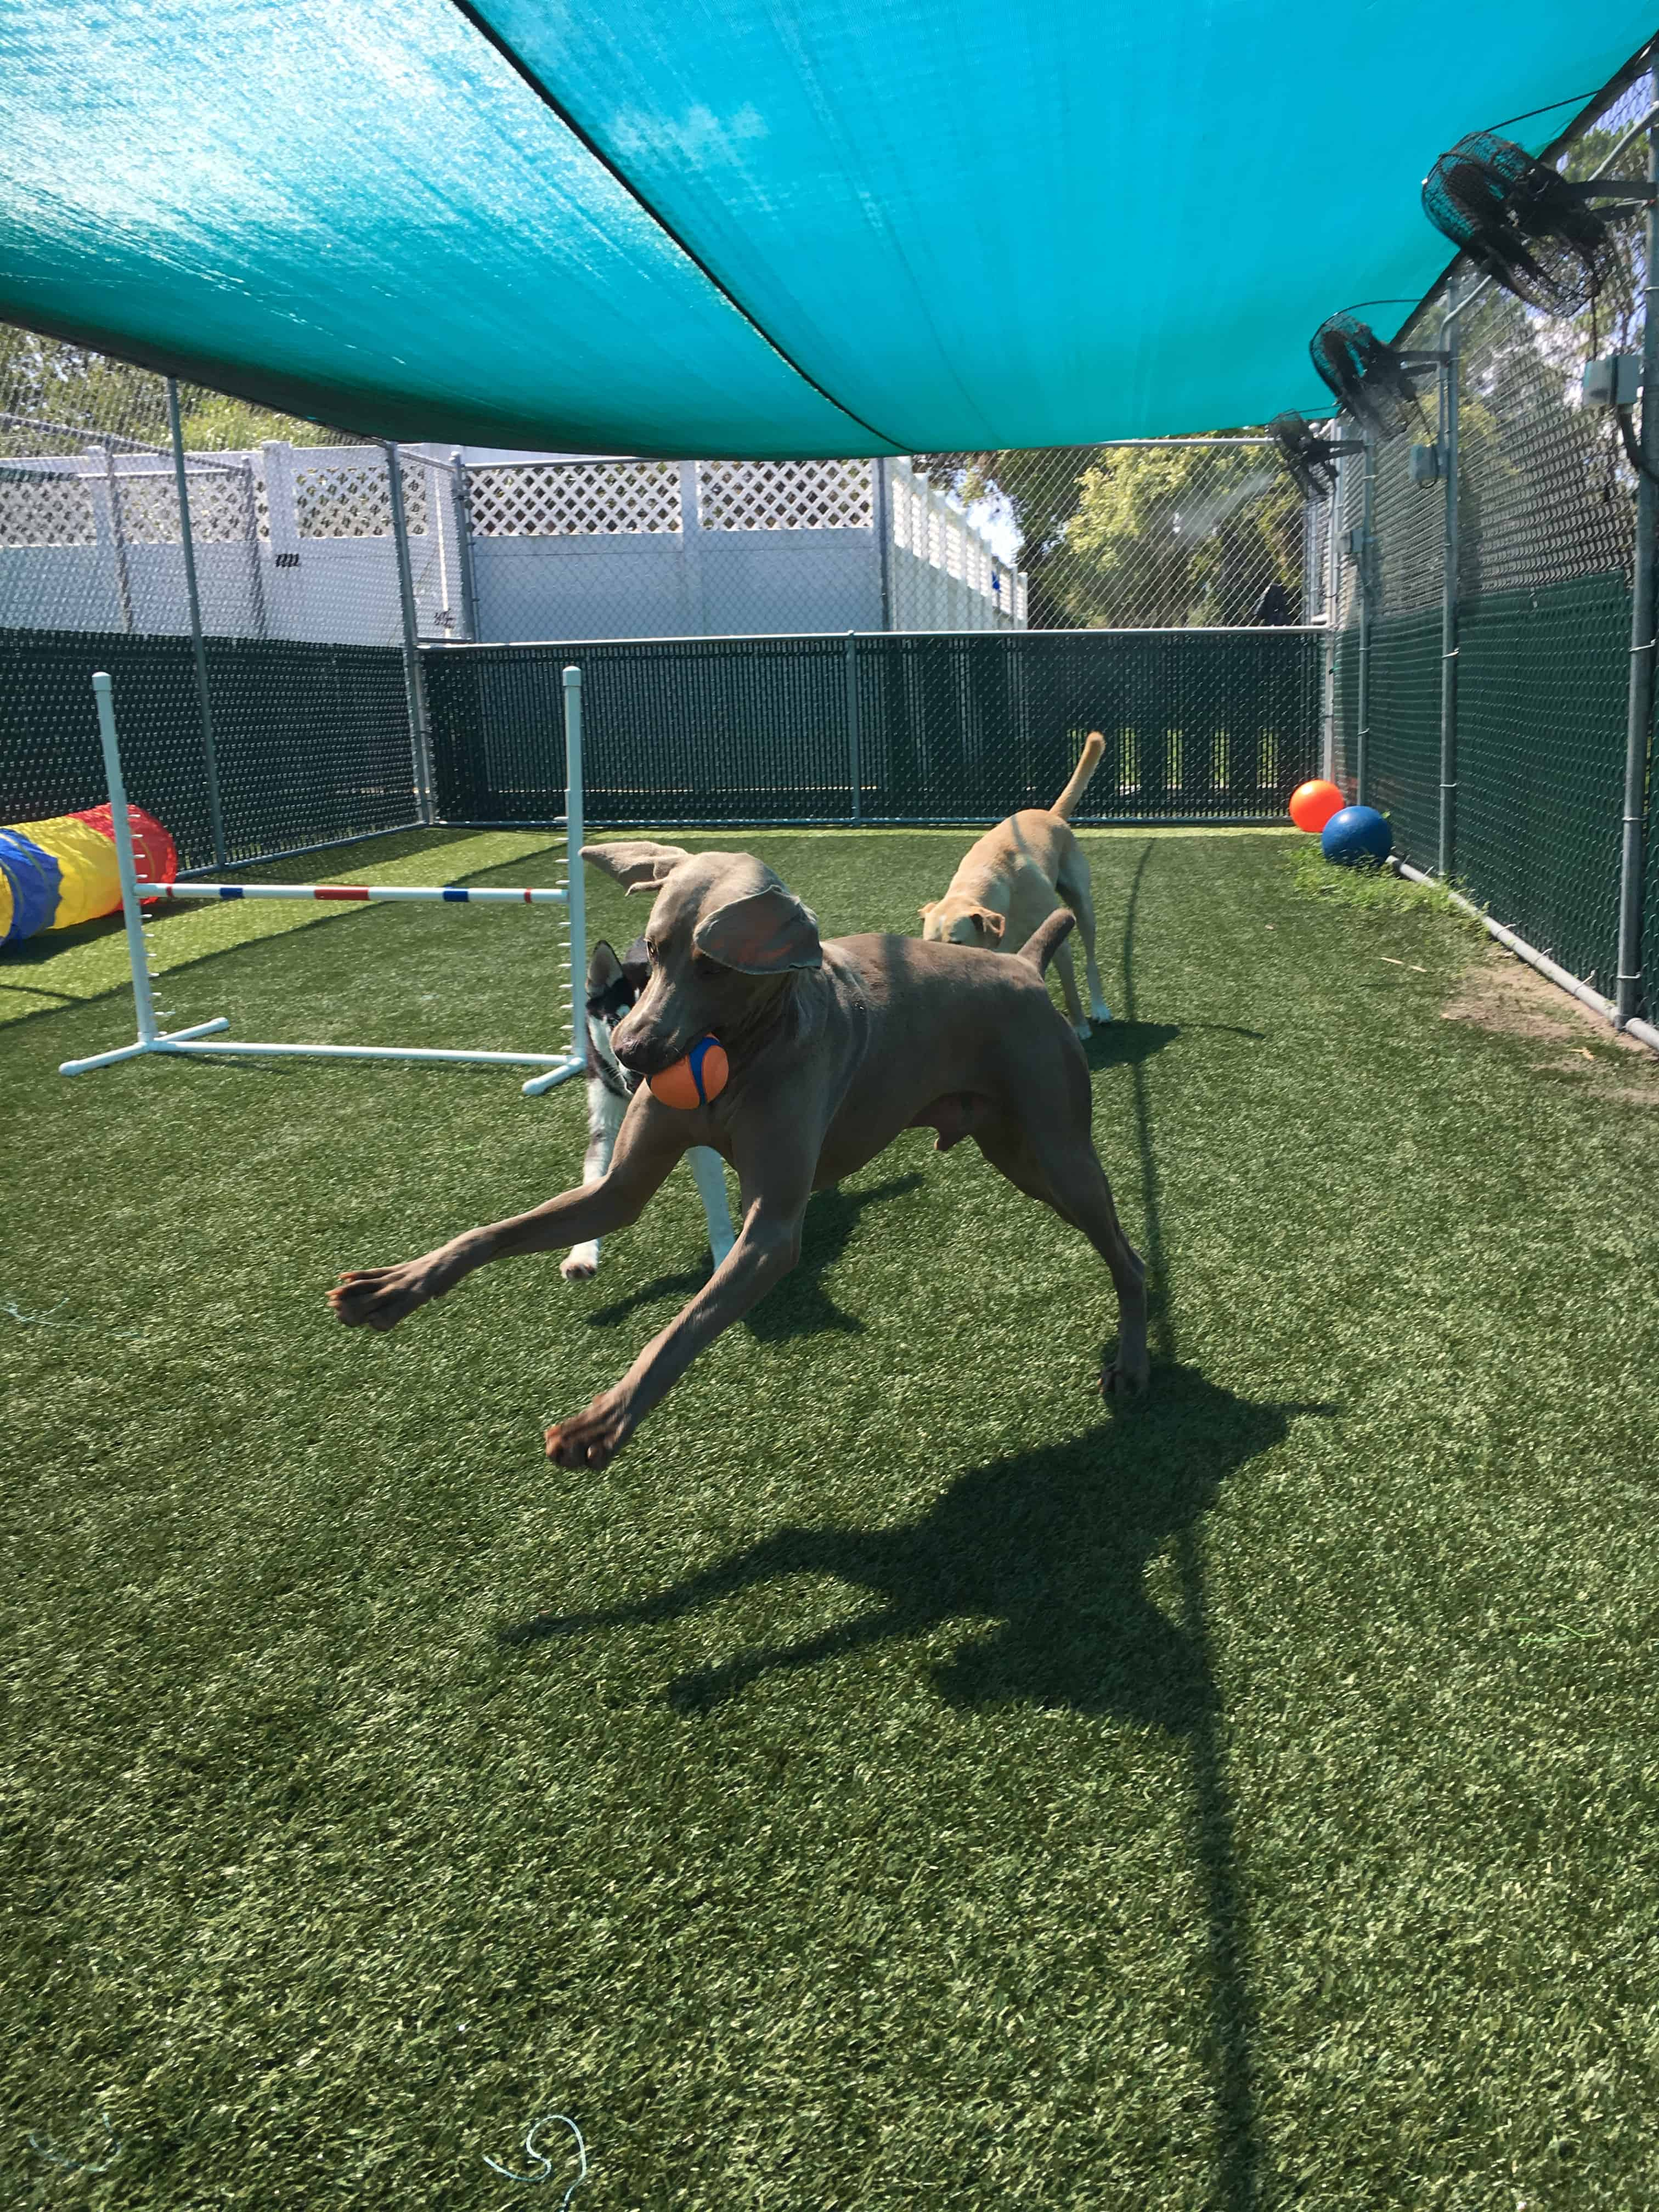 Weimaraner running with ball at Bayside Pet Resort in Sarasota, FL